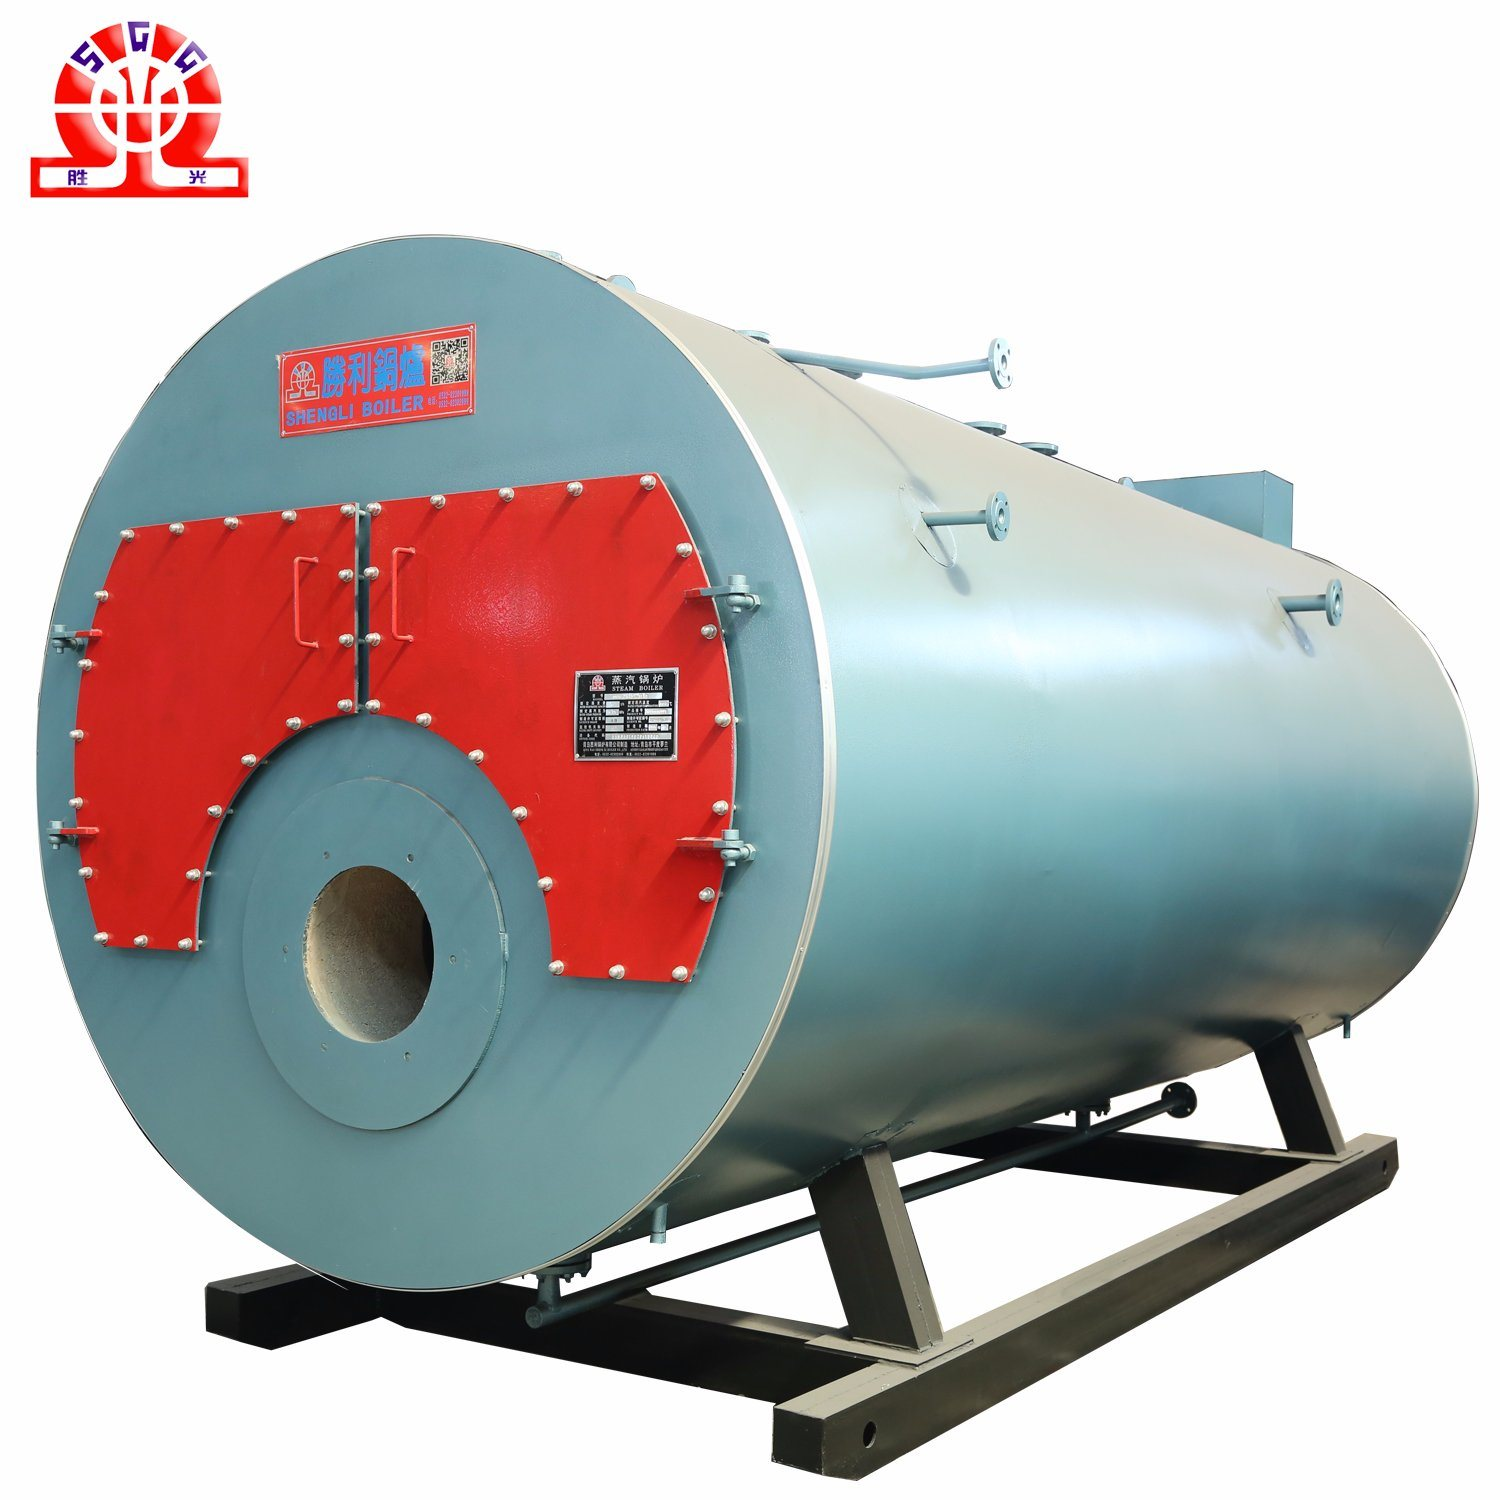 Wholesale Steam Boiler - Buy Reliable Steam Boiler from Steam Boiler ...